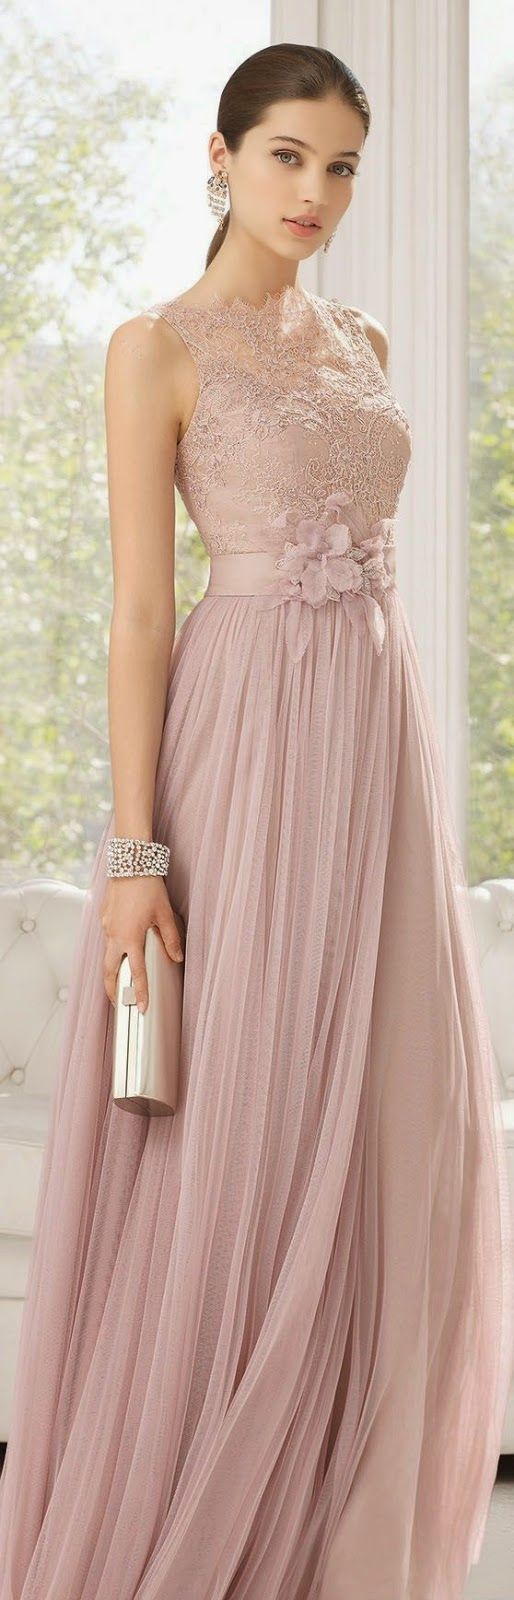 30 best vestidos de fiesta images on Pinterest | Party outfits ...